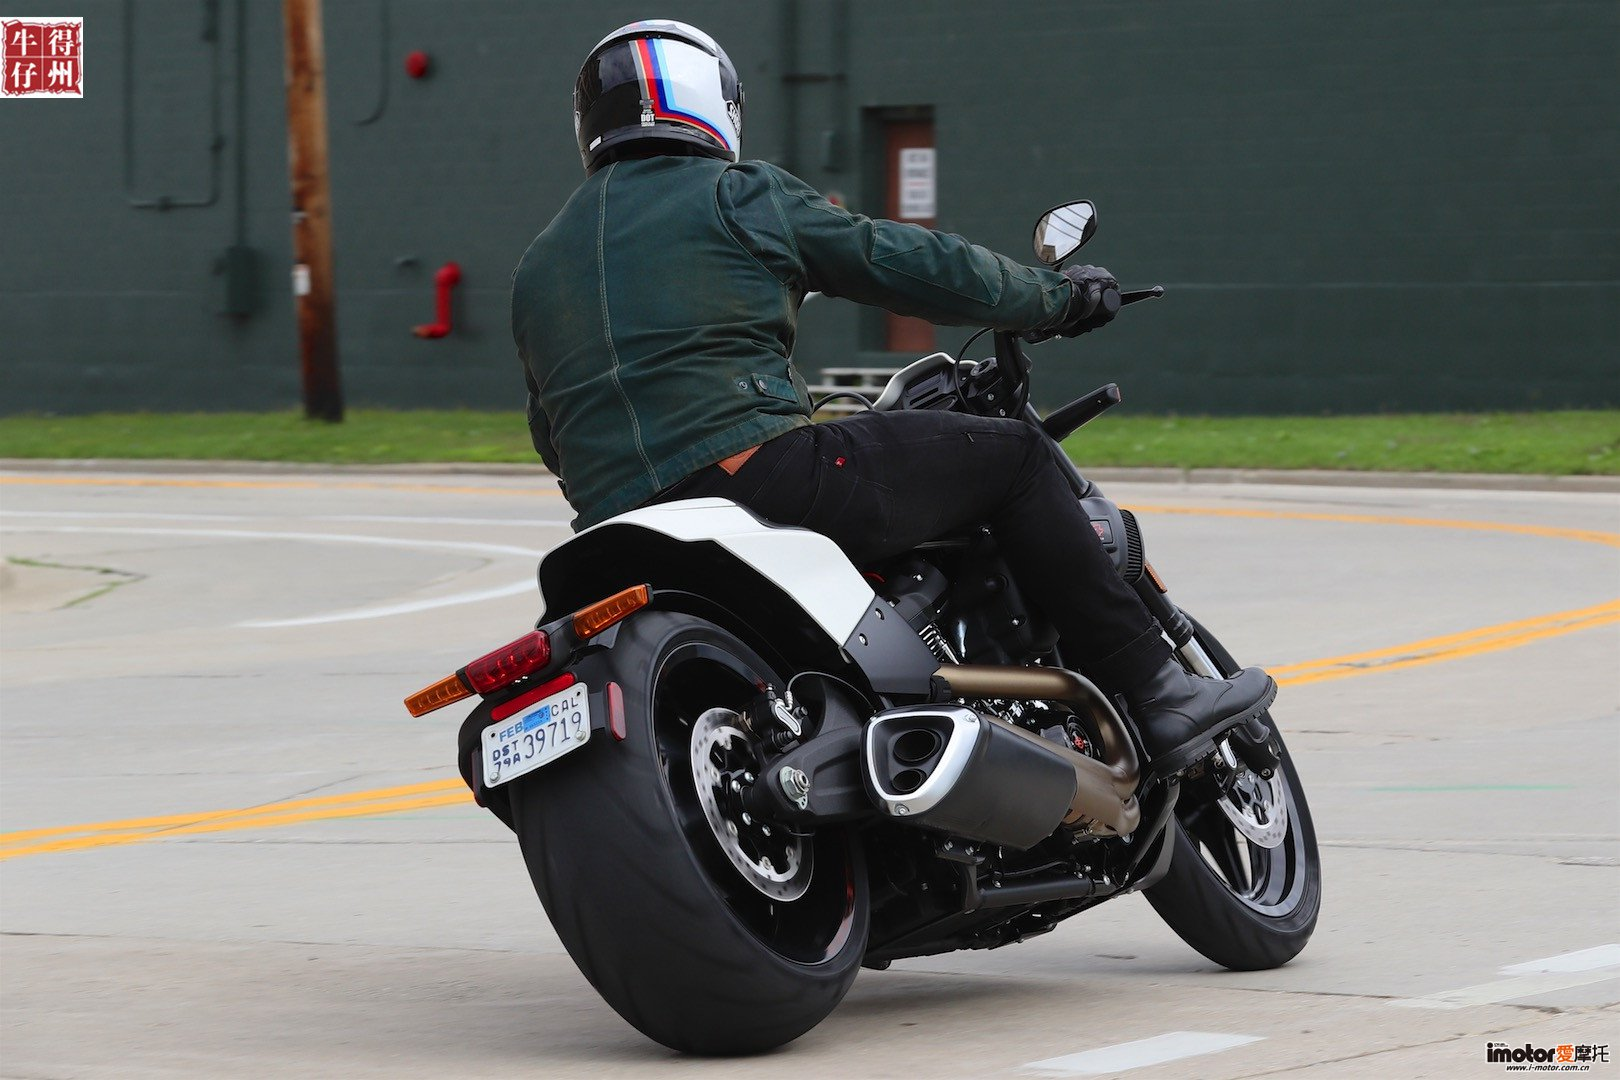 2019-Harley-Davidson-fxdr-114-review-power-cruiser-motorcycle-6.jpg